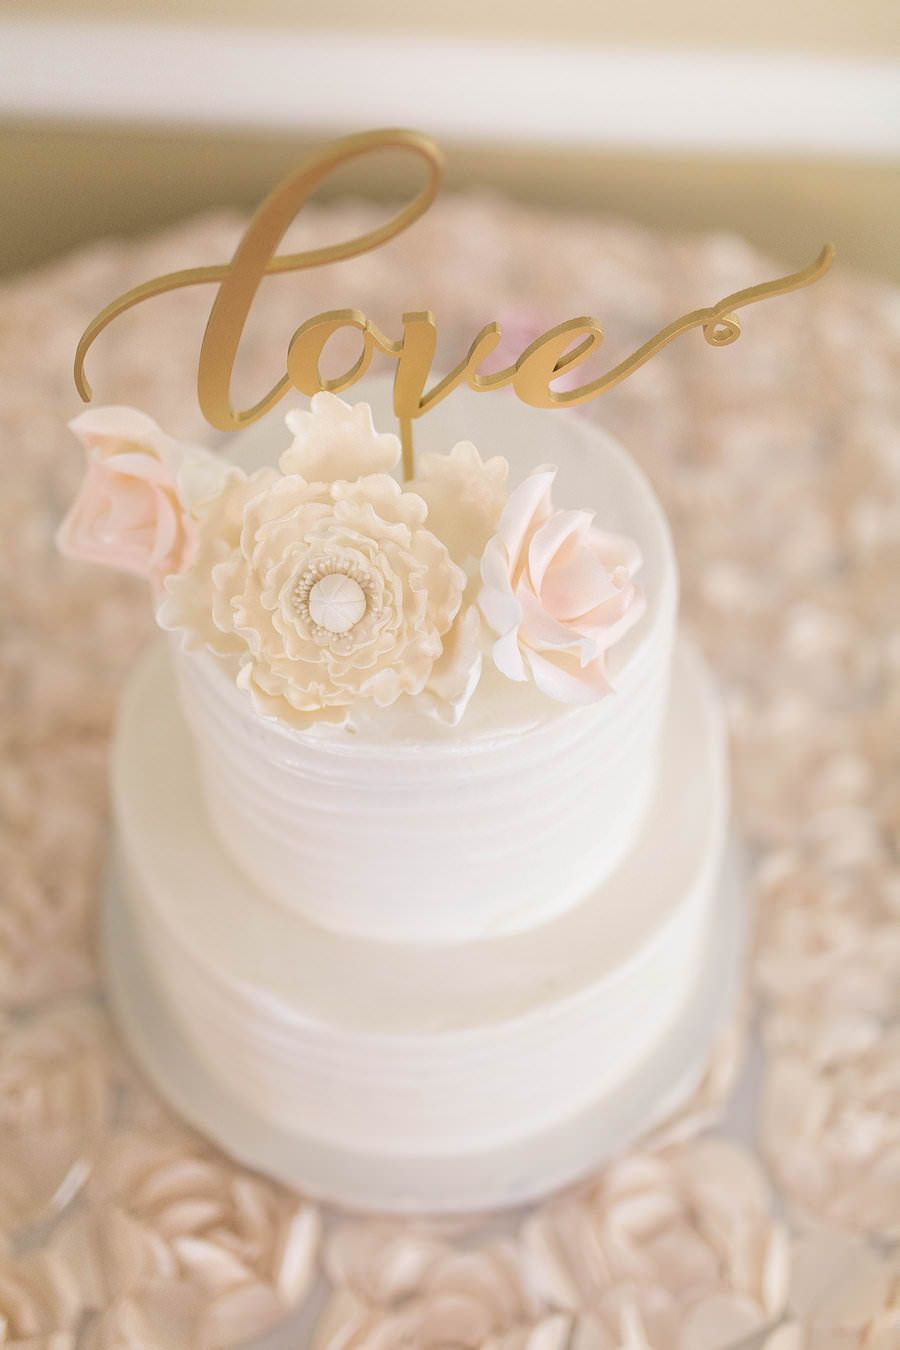 Two Tiered, Round, White Wedding Cake With Gold Love Cake Topper | Tampa  Bay Wedding Cake Baker Olympia Catering